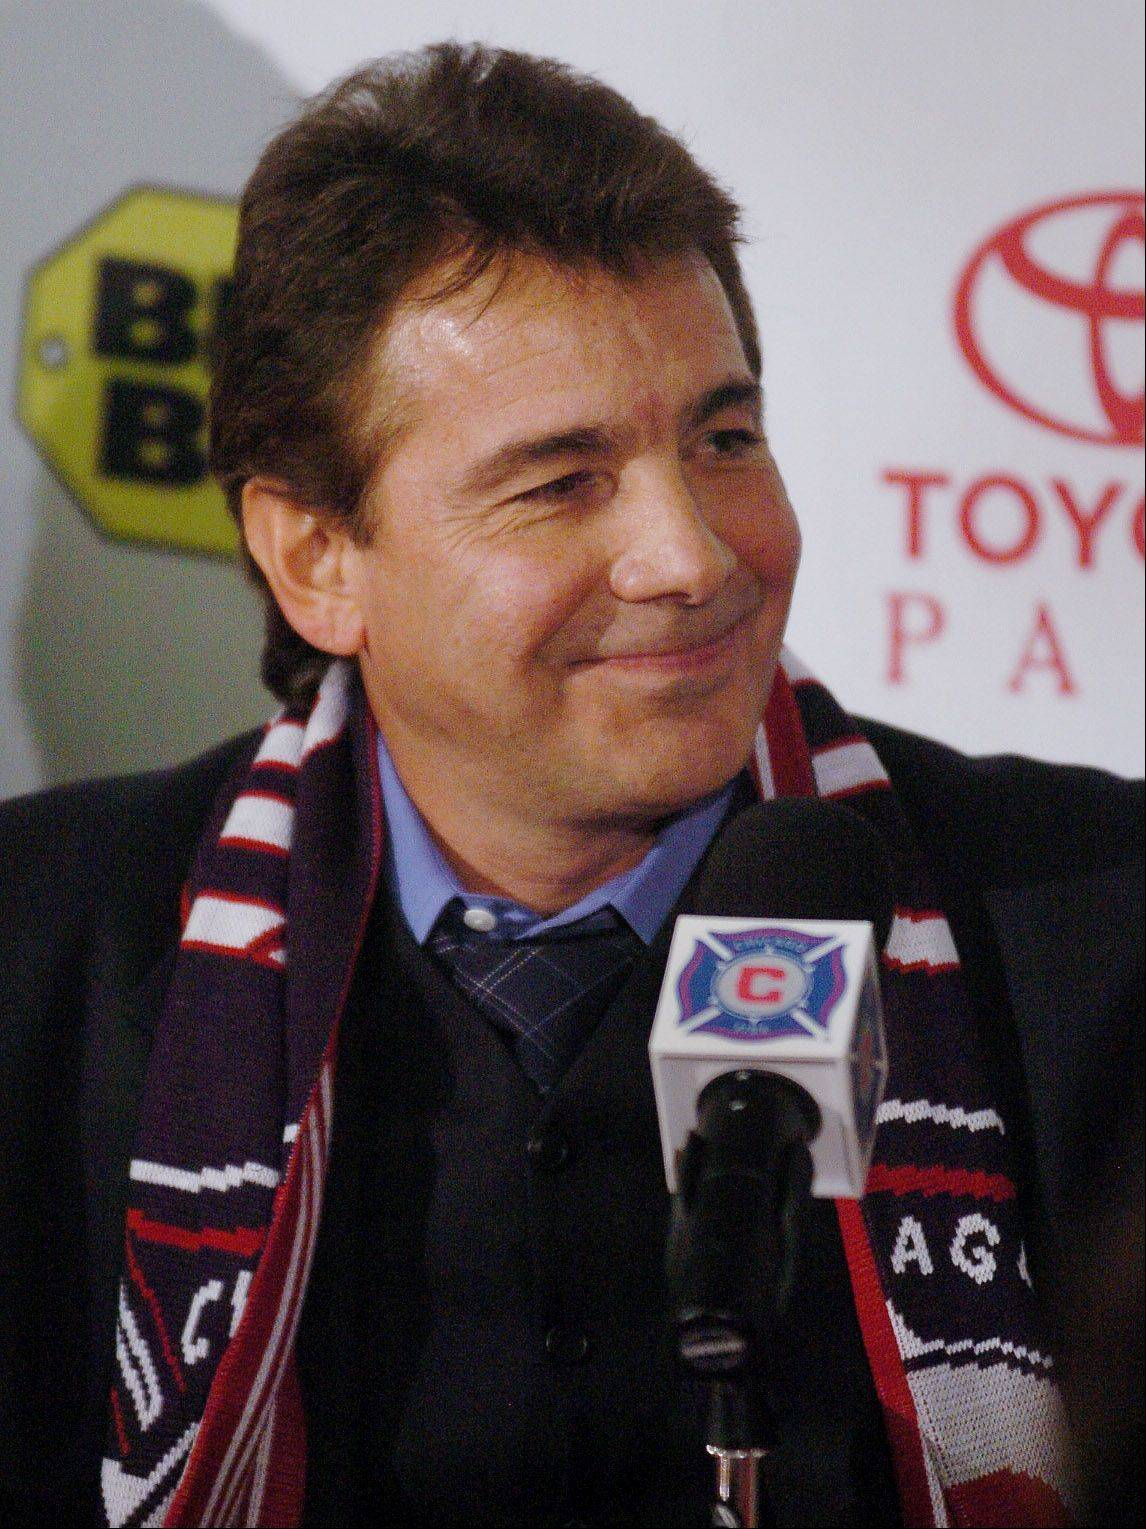 Chicago Fire coach Carlos de los Cobos is all smiles after being named head coach.